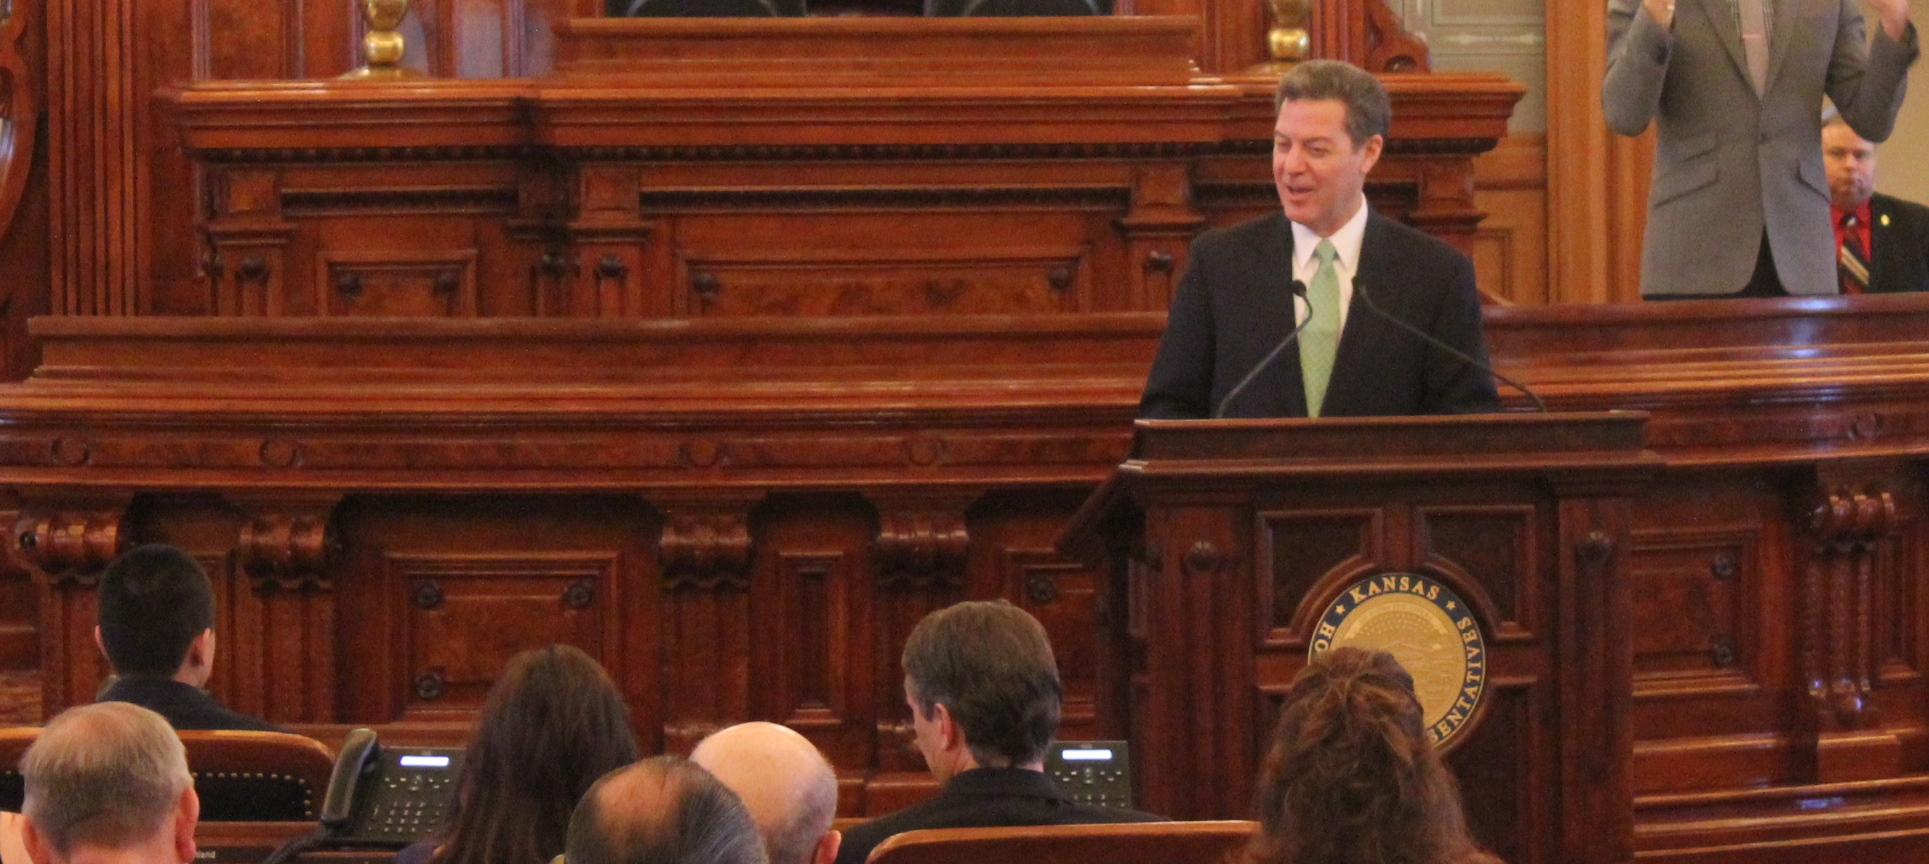 Kansas Governor Sam Brownback at his inauguration ceremonies, January 12, 2015 (Photo by Stephen Koranda)